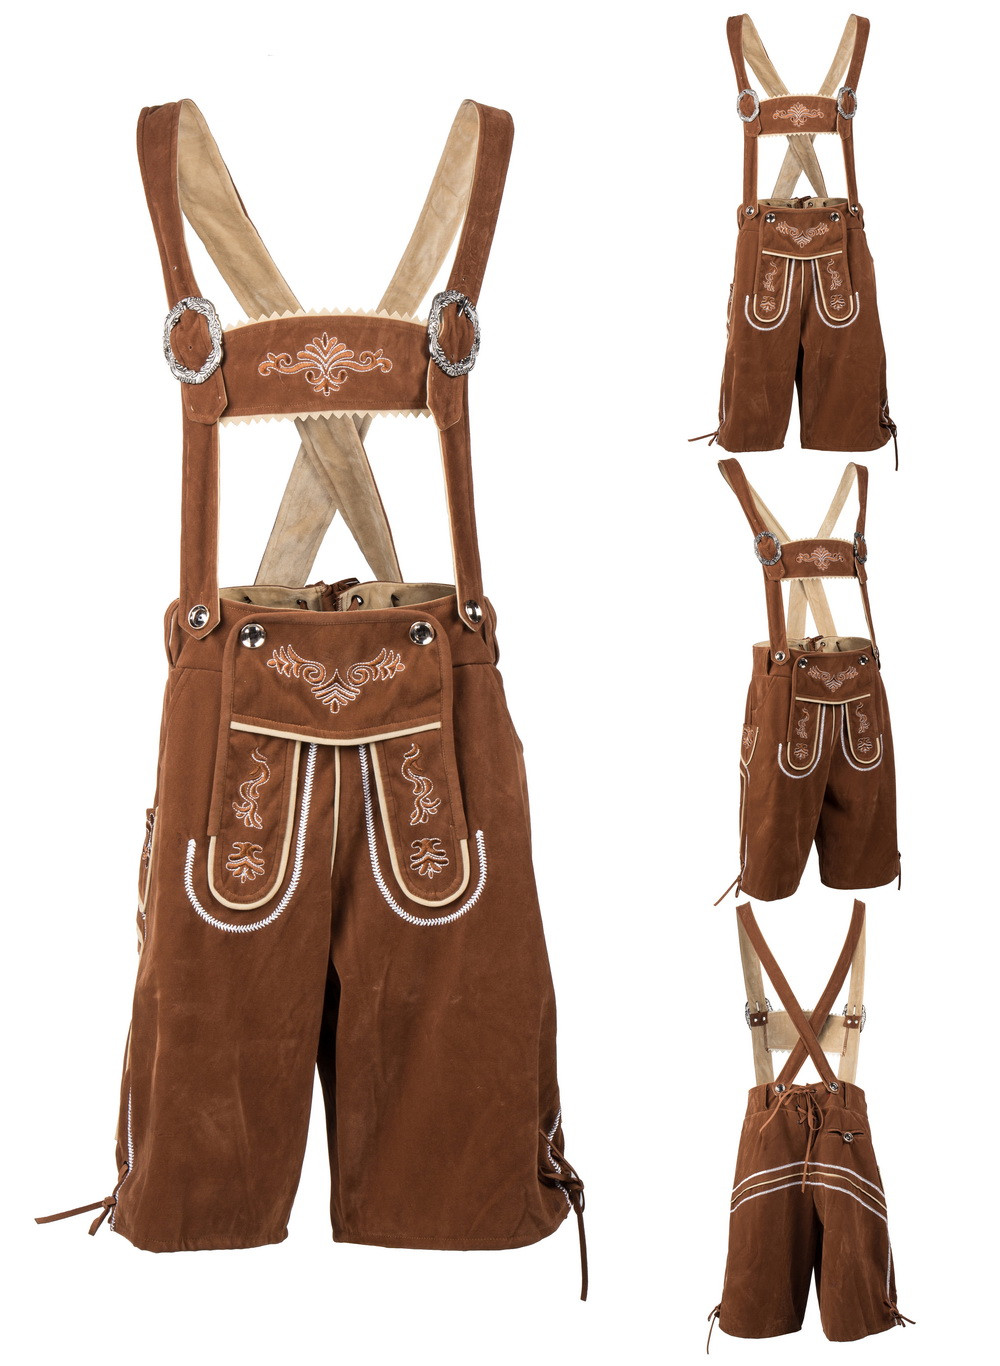 German Oktoberfest Bavarian Trachten Men's Lederhosen Shorts Beer Guy Costume